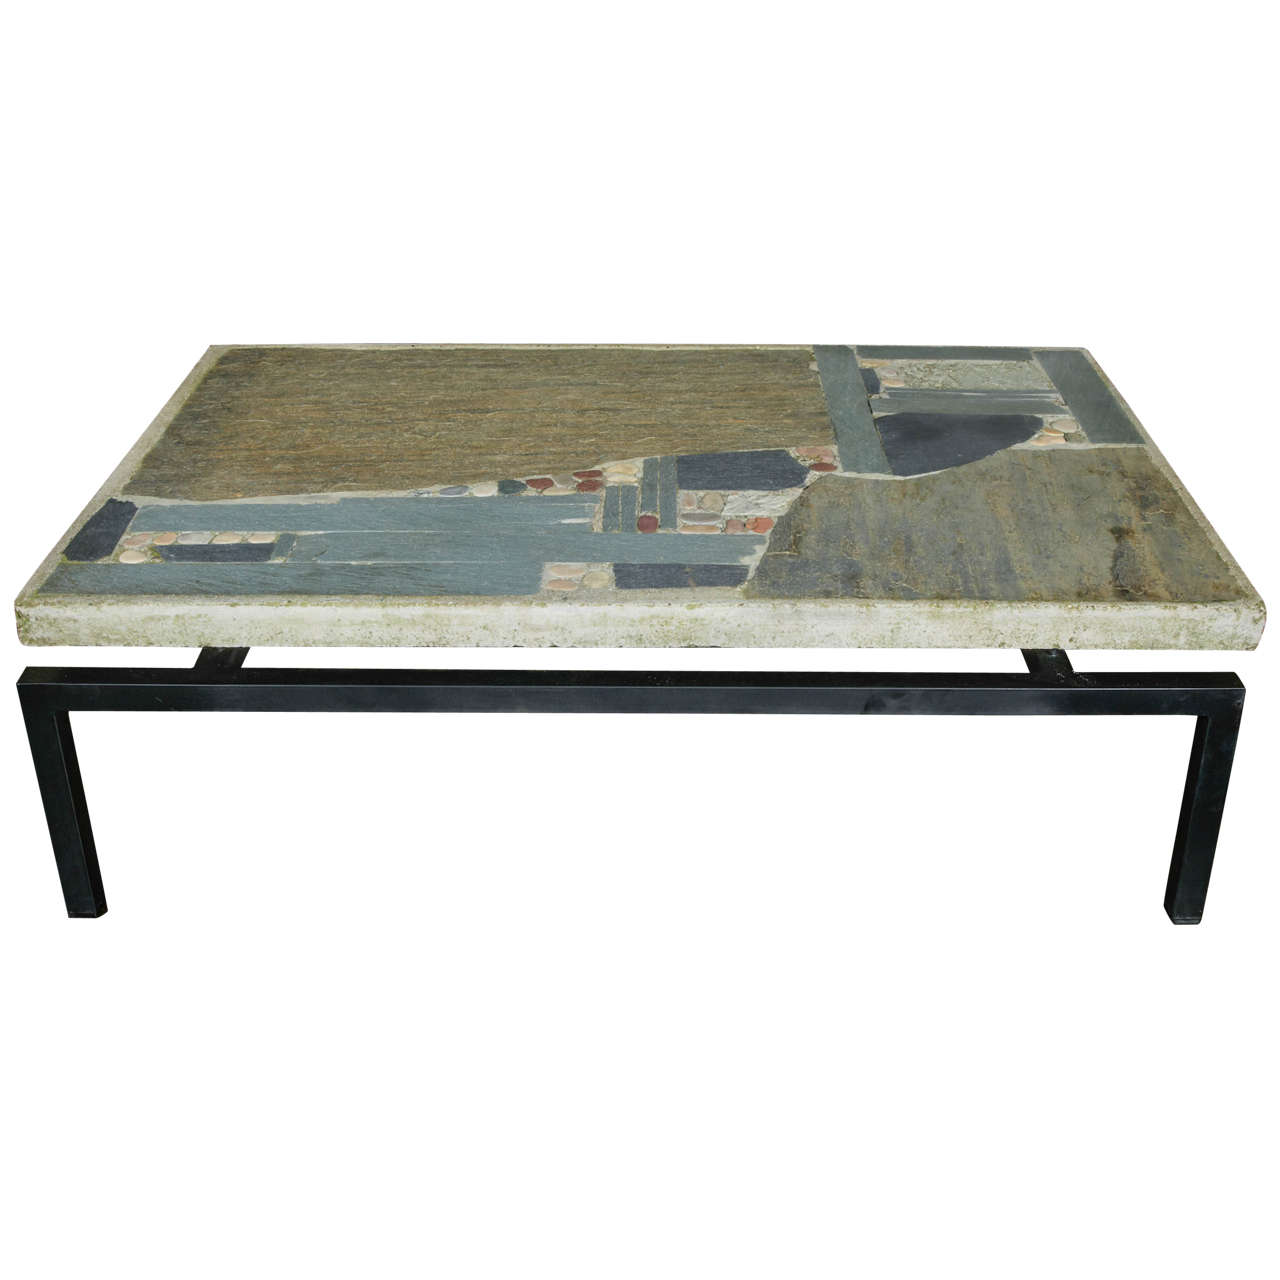 Paul Kingma Coffee Table With Incrustation Of Slate And Stone Pieces At 1stdibs